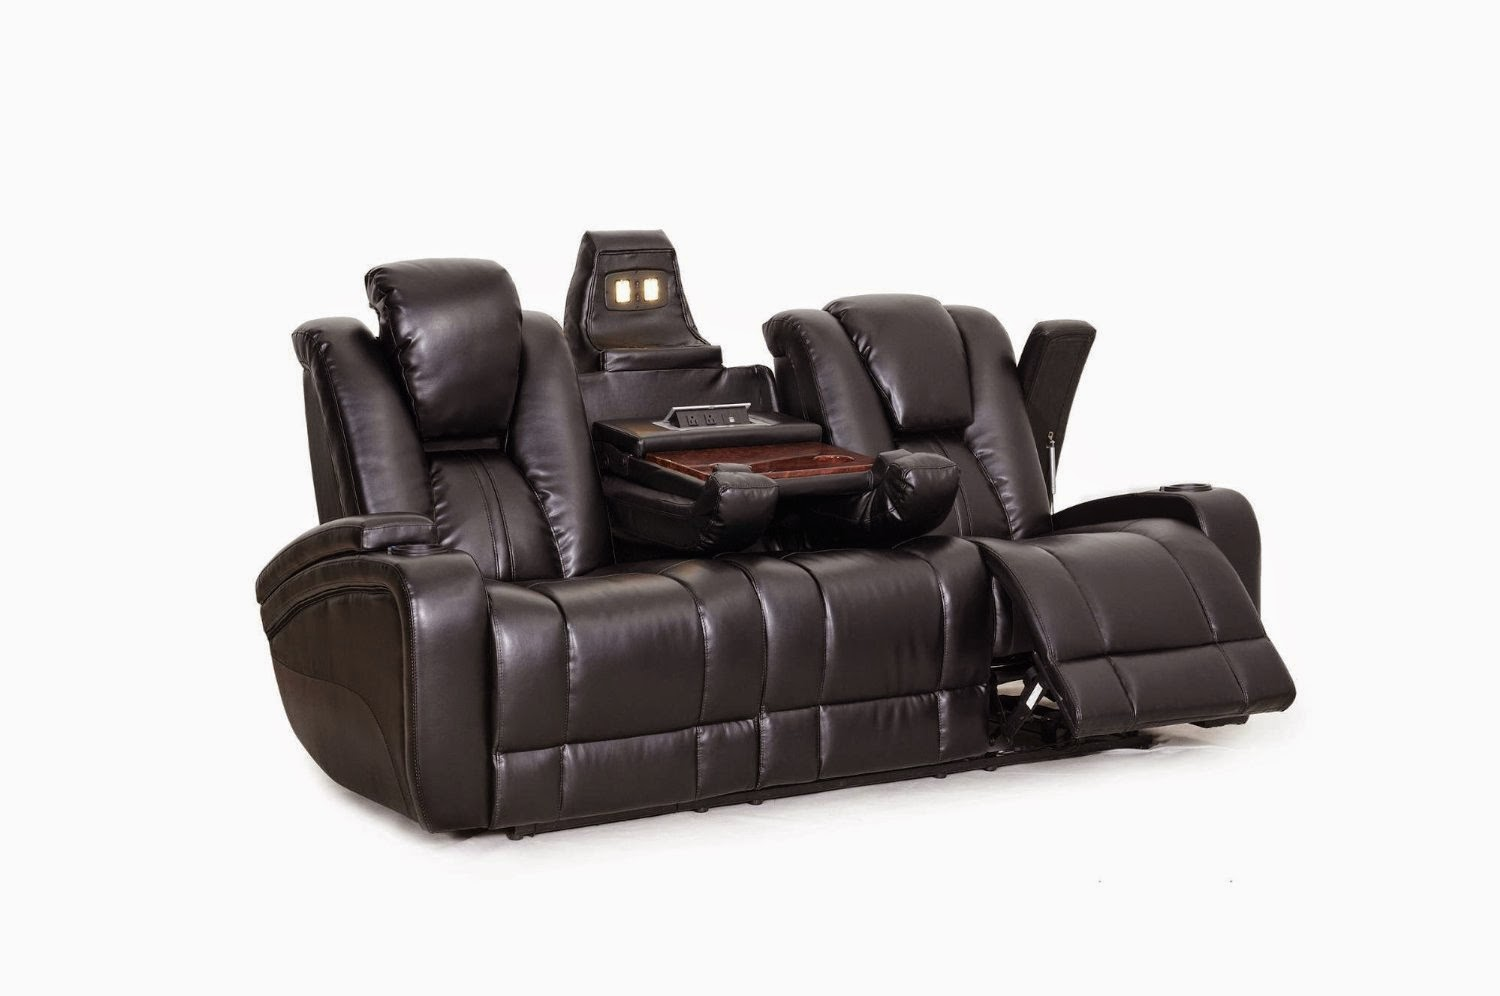 Reclining Leather Sofas Urban Ladder Sofa Review Top Seller And Recliner Loveseat